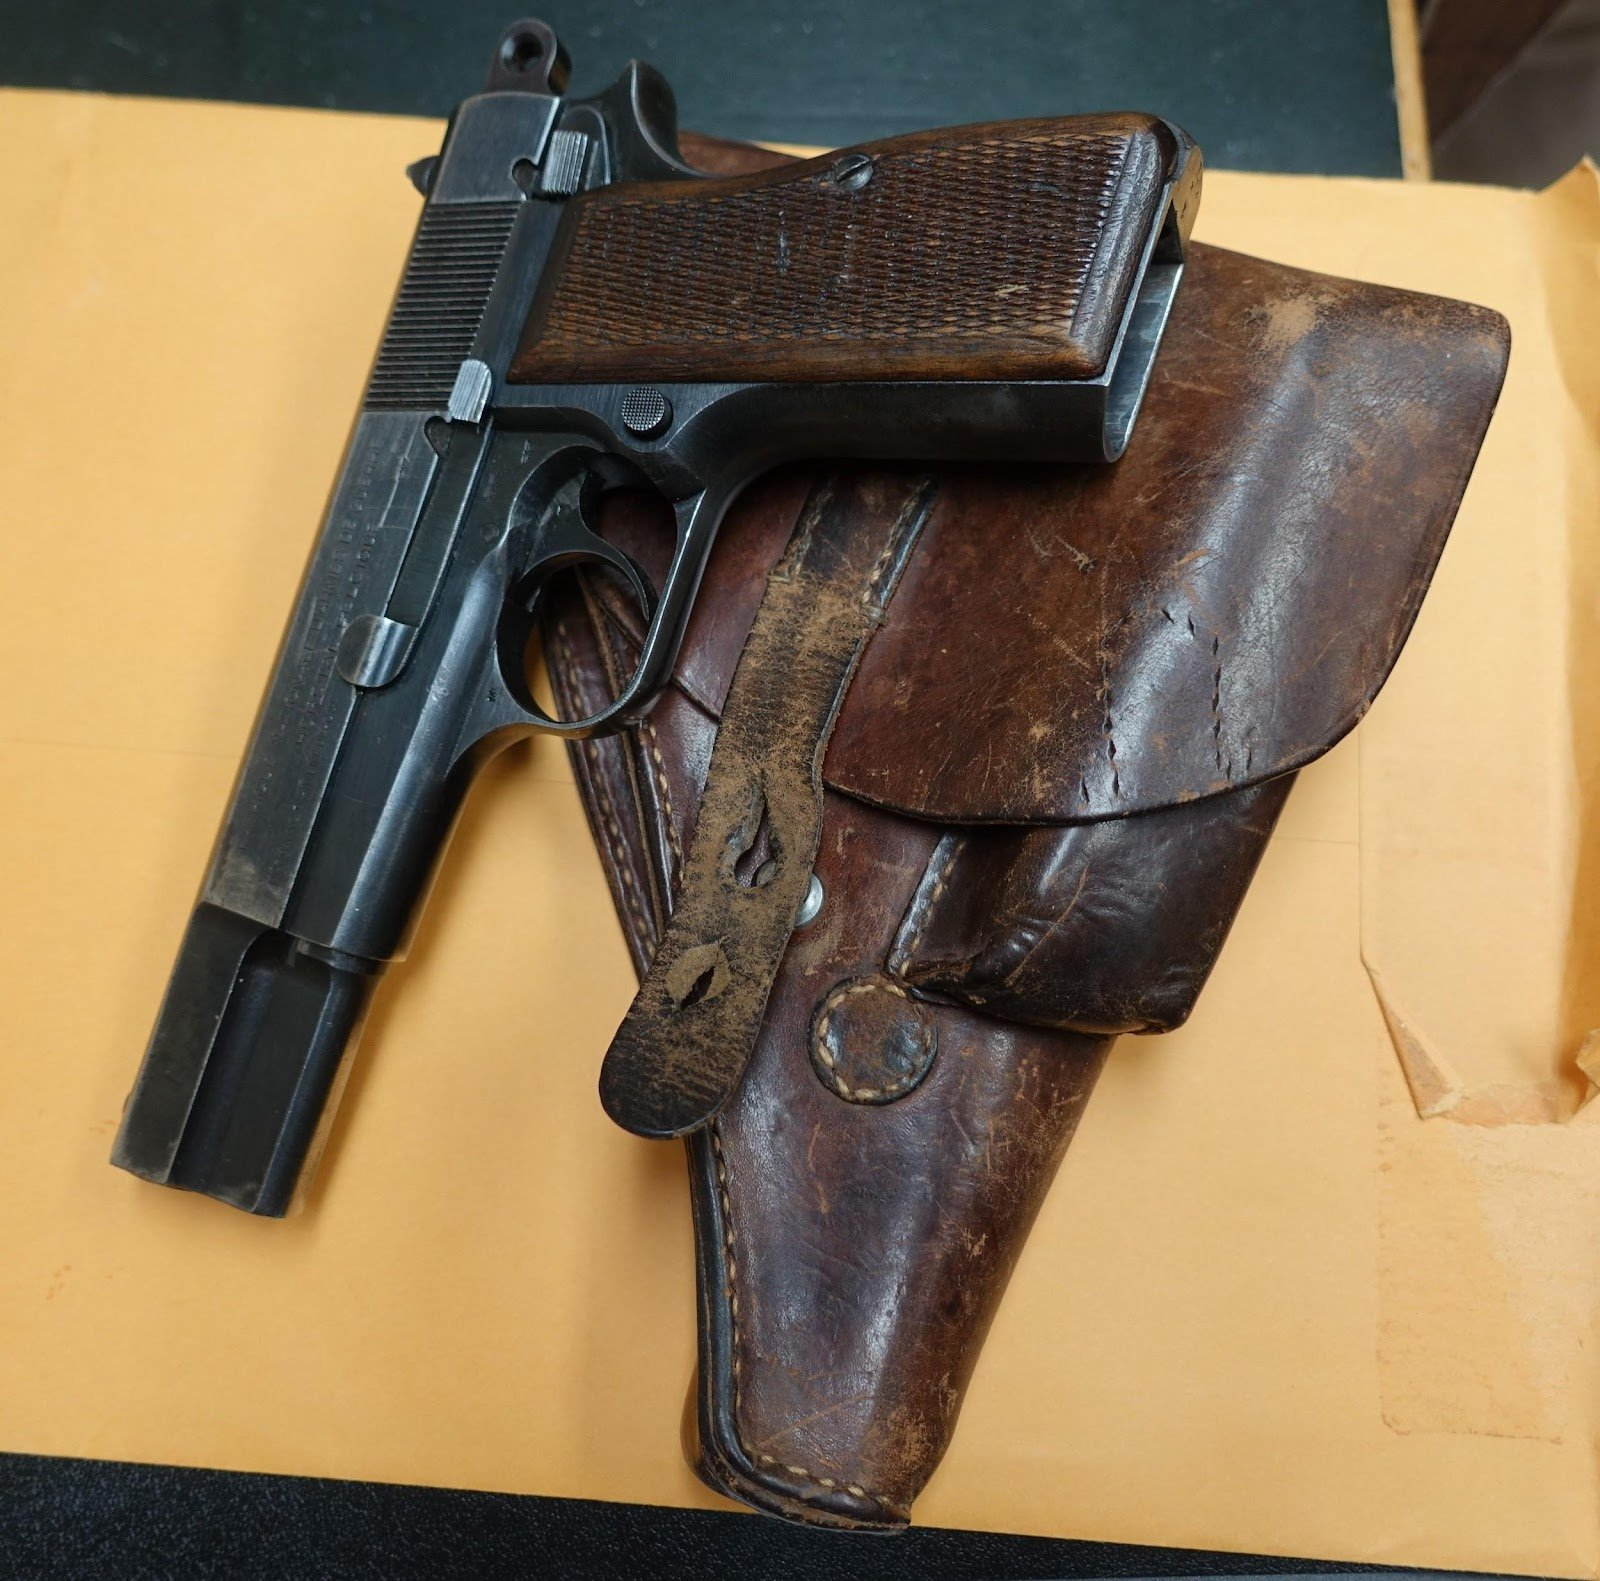 The gun Langrehr took from a Nazi who had killed his friend. (Photo provided to the Daily Caller by Henry Langrehr)